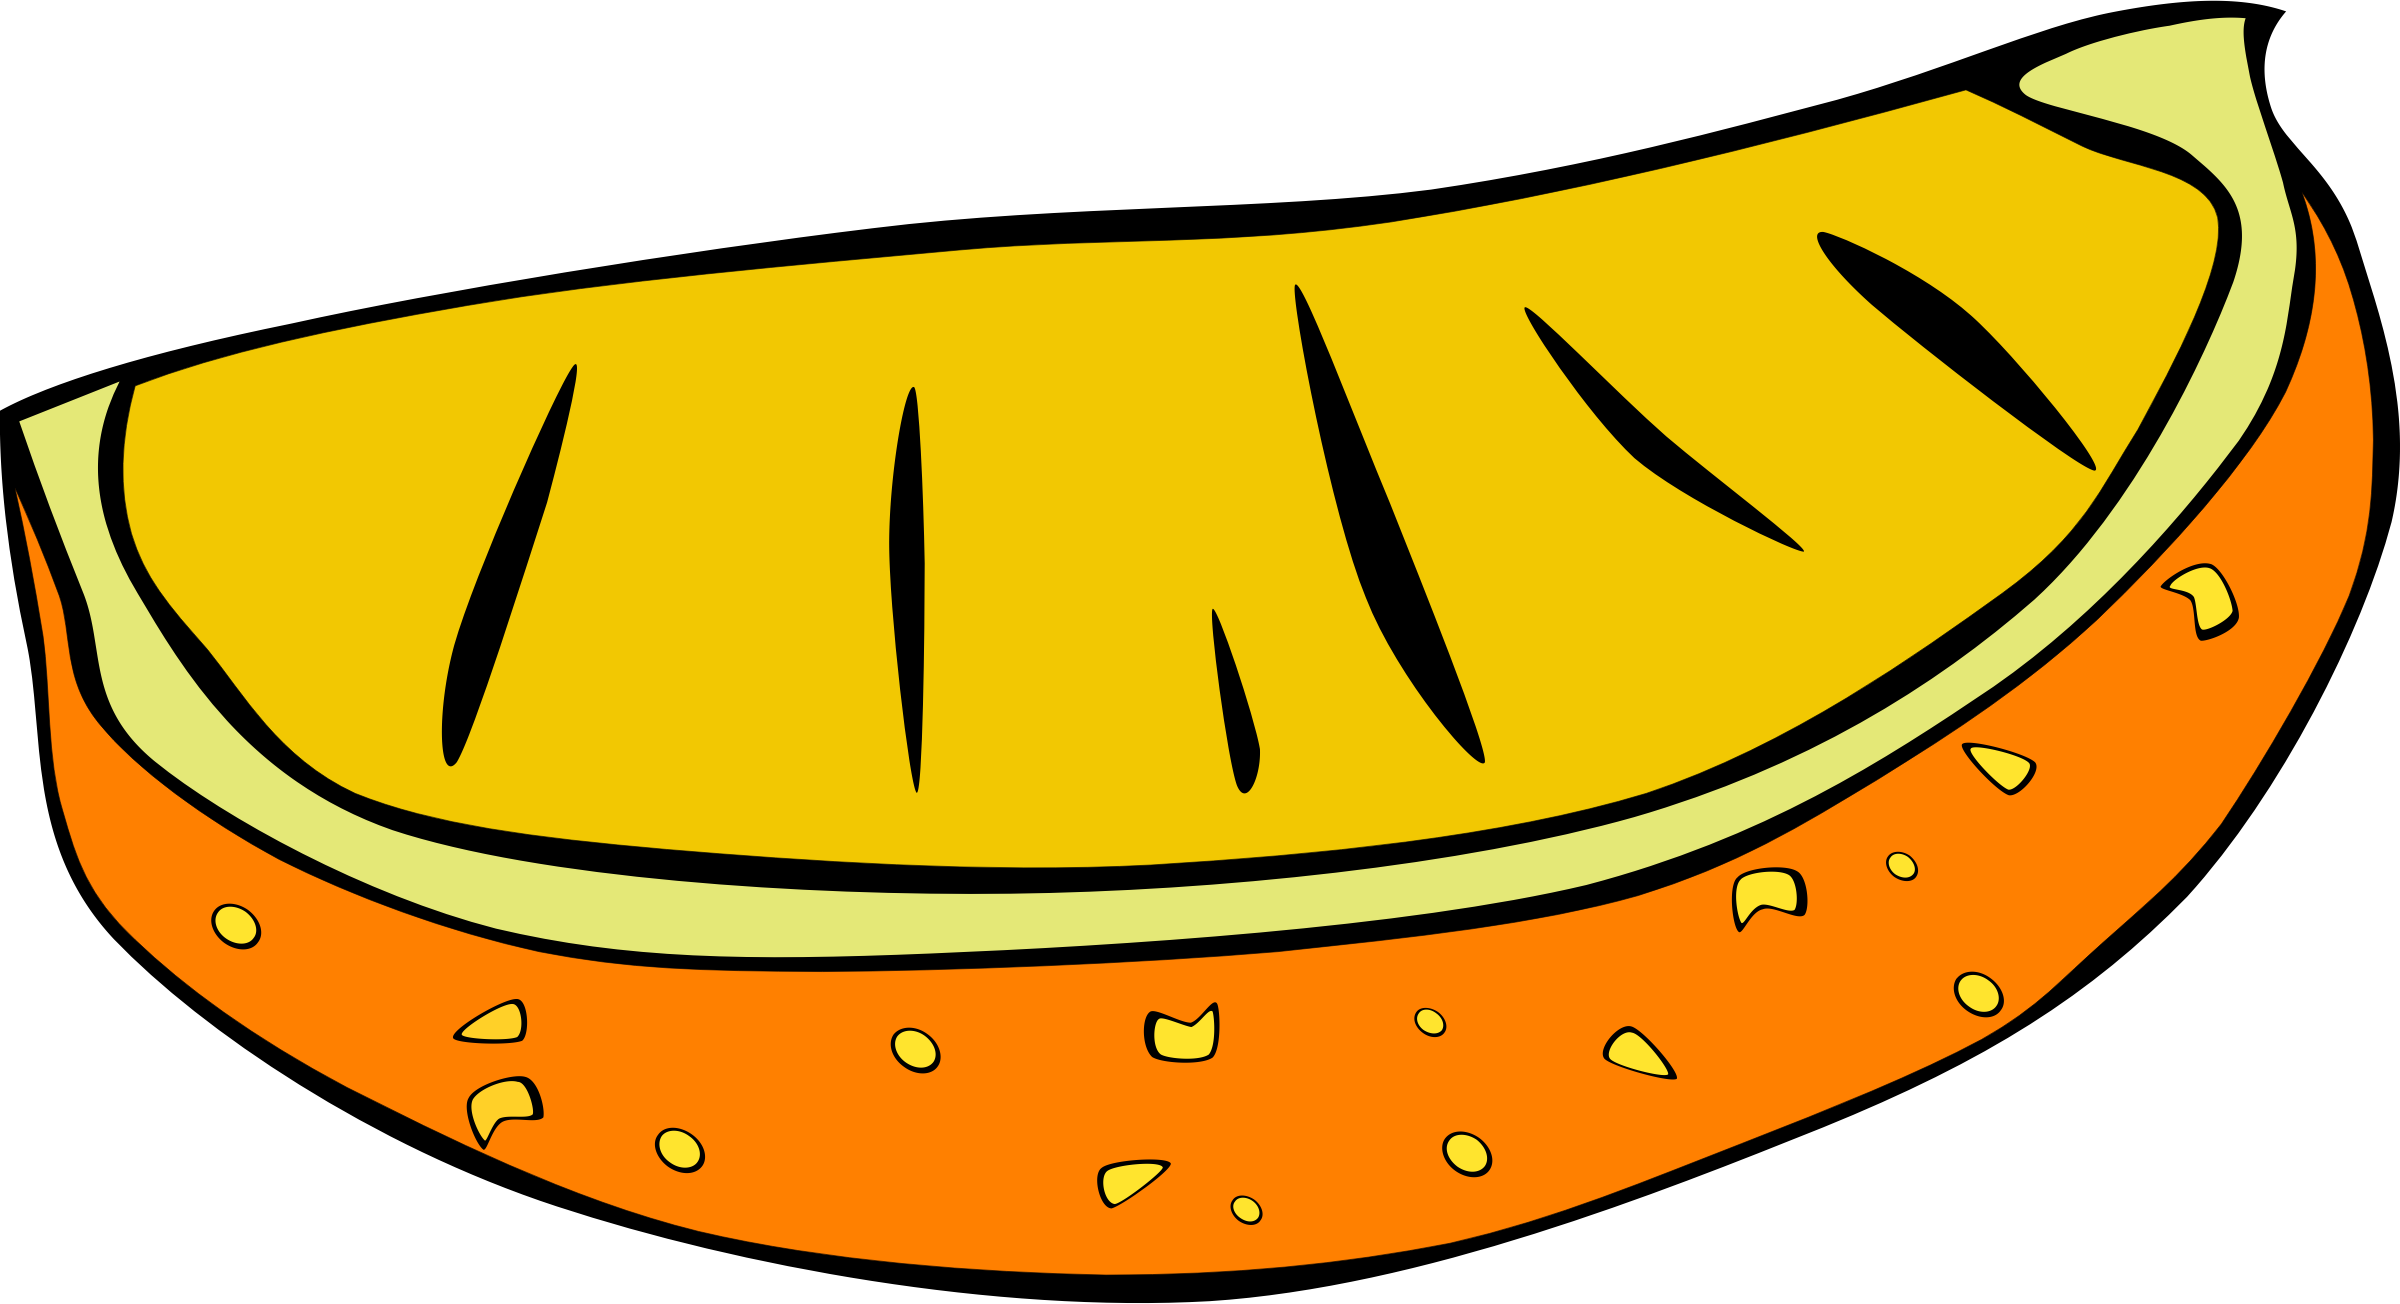 2400x1304 Snack Clipart, Suggestions For Snack Clipart, Download Snack Clipart